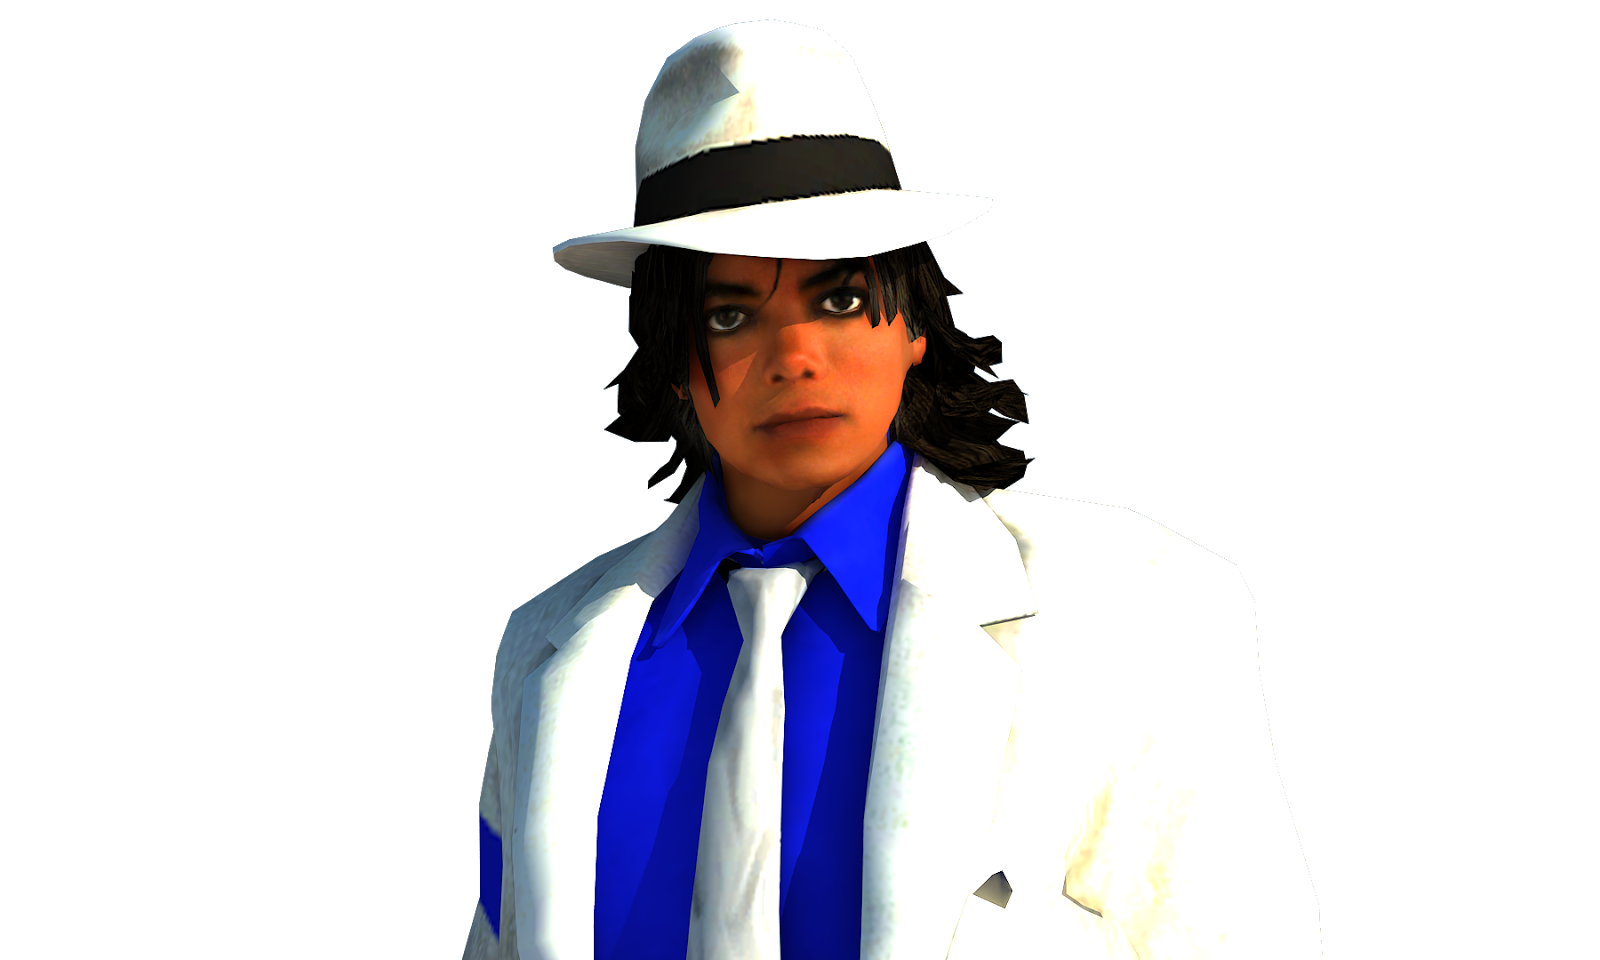 michael jackson png images for download crazypngm crazy png images download #28830